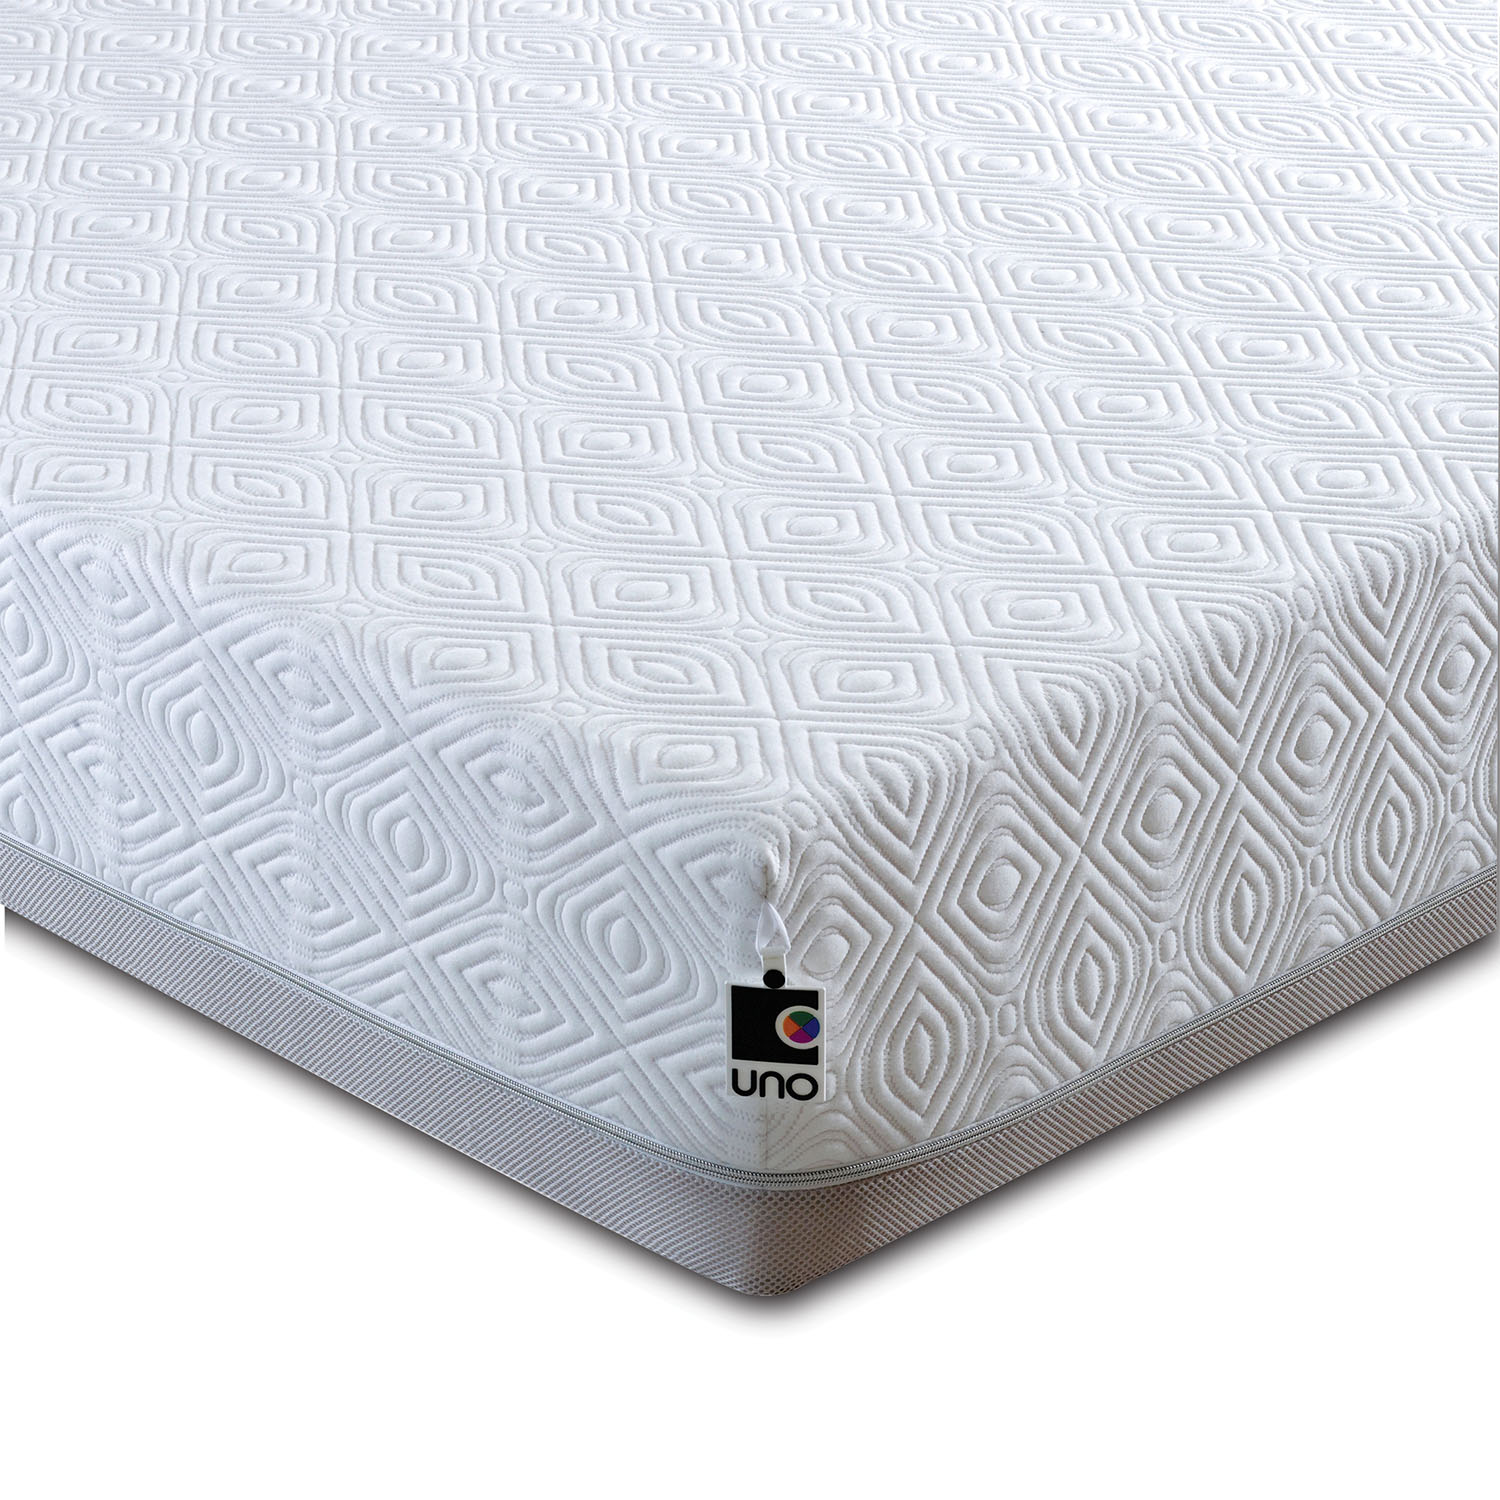 Breasley Mattress Review Breasley Uno Memory Pocket 2000 Mattress Best Price Promise